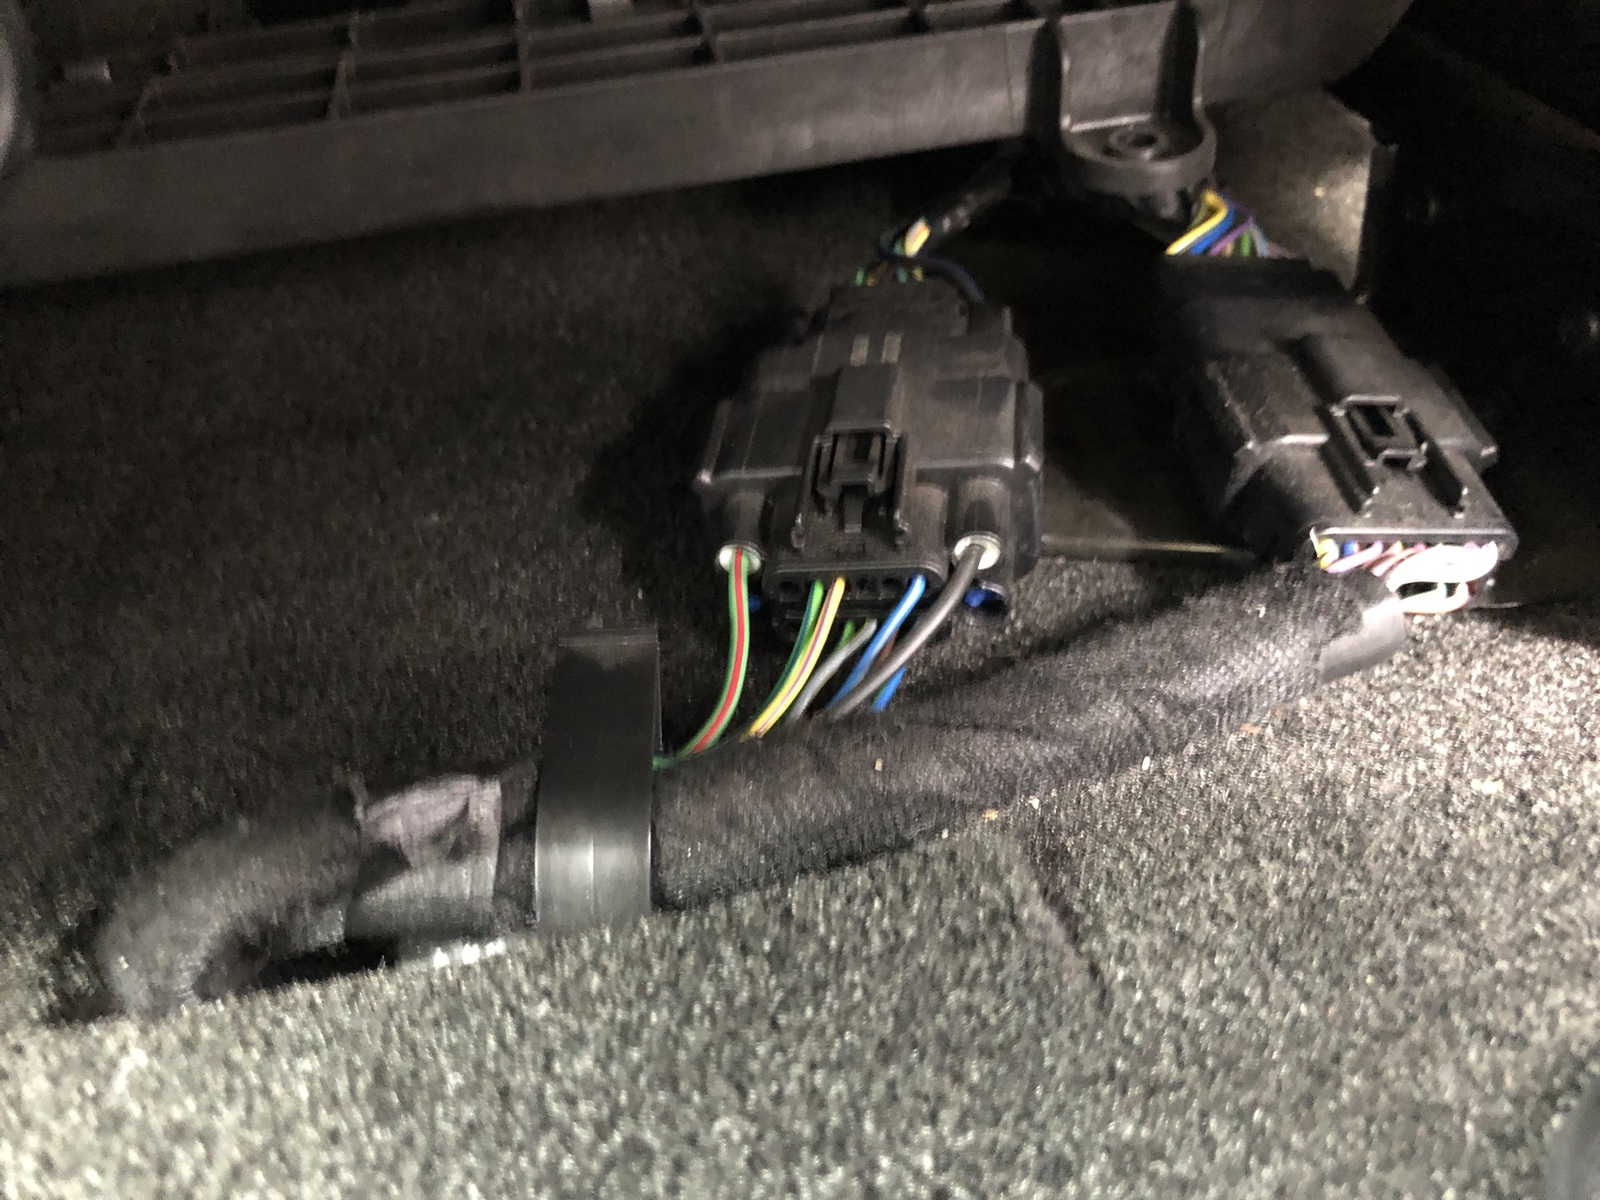 [DIAGRAM_38IS]  Upgraded to power seats on base S550- surprising solution found!   2015+  S550 Mustang Forum (GT, EcoBoost, GT350, GT500, Bullitt, Mach 1) -  Mustang6G.com   2015 Mustang Fuse Box Ground Wire      Mustang6G